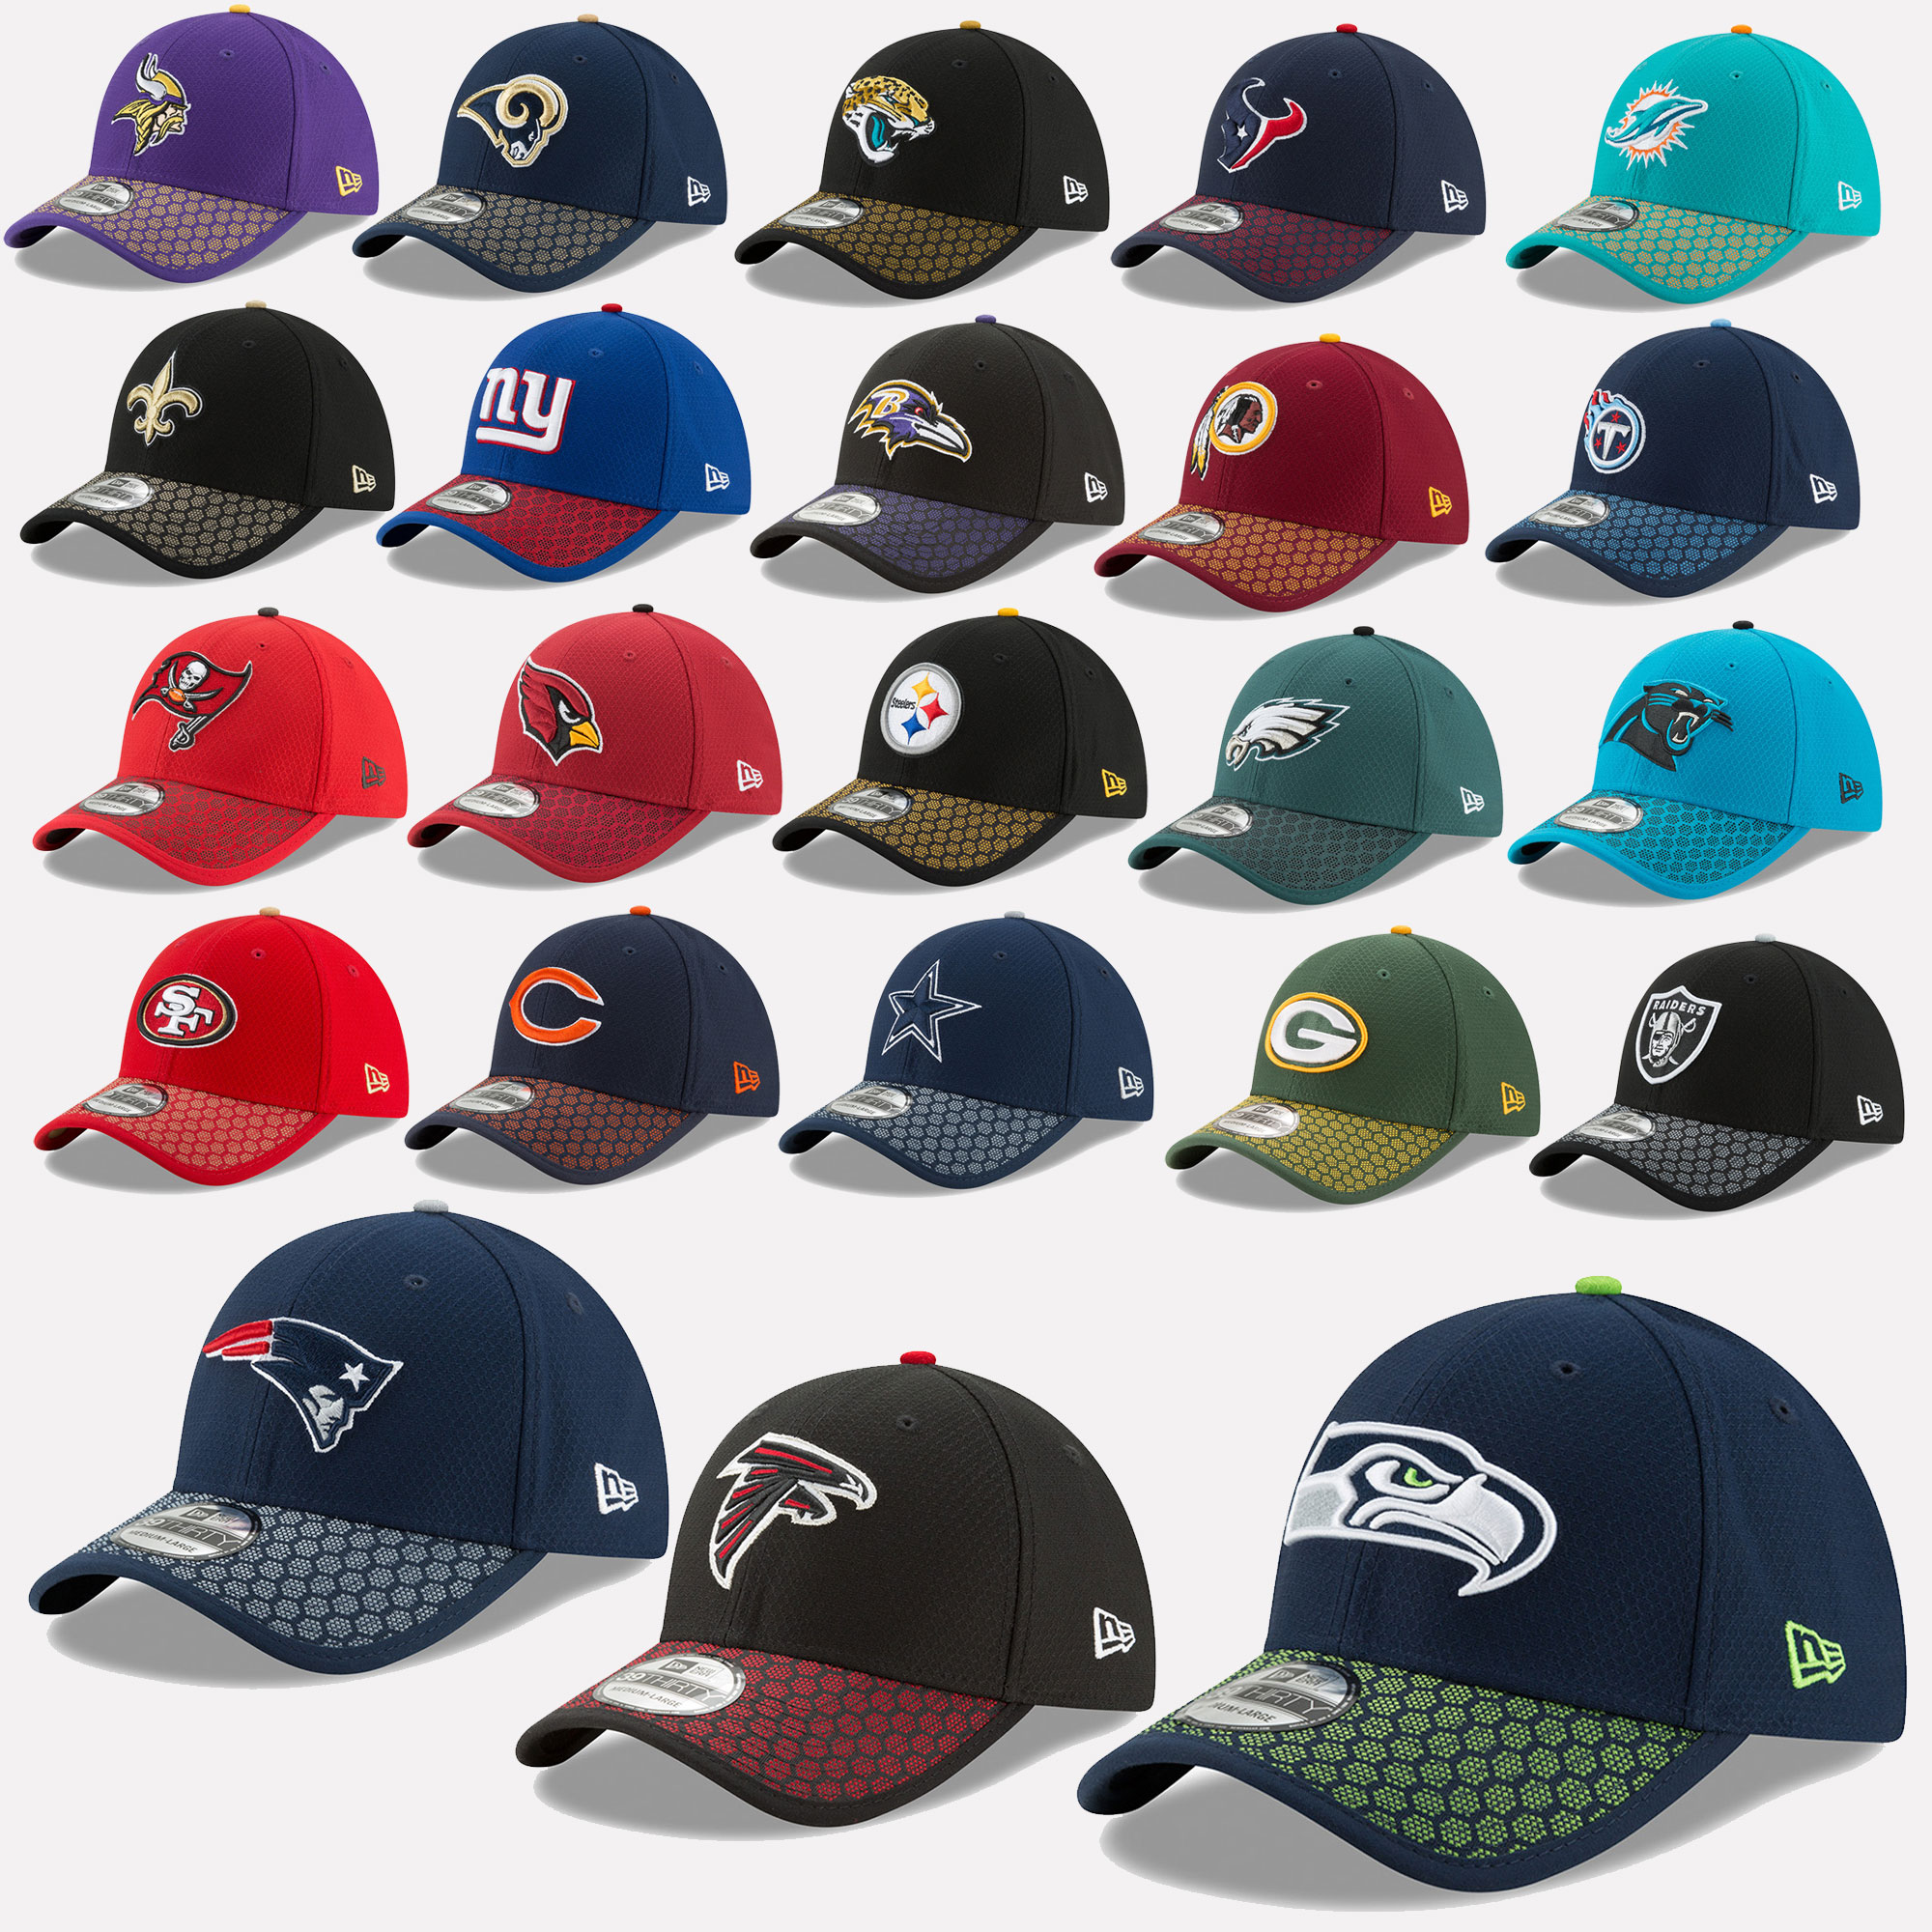 New Era Cap 39Thirty NFL Sideline 2017 Seahawks patriots raiders cowboys etc  eBay